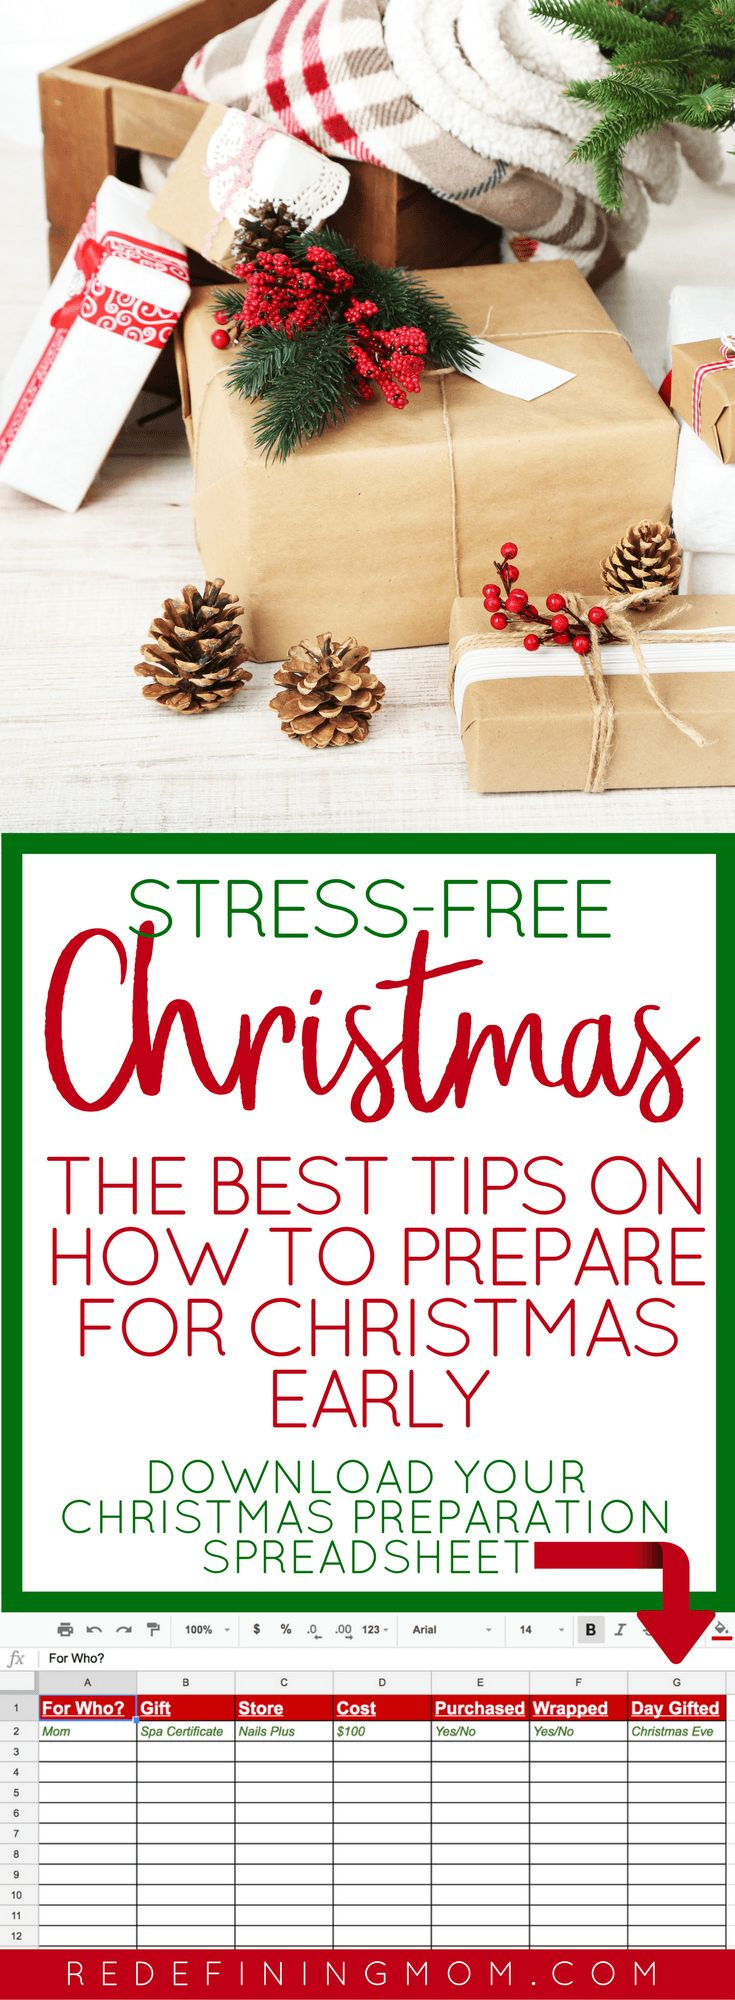 Tips on how to get ready for Christmas early and have a stress-free Christmas. Life is busy and Christmas is a time we should be relaxed and enjoying time with family. That can be hard when you have so much to do. Download the free Christmas preparation spreadsheet that I use to get organized for Christmas two months ahead of time and learn how to prepare for Christmas early. Get organized for Christmas. via @redefinemom